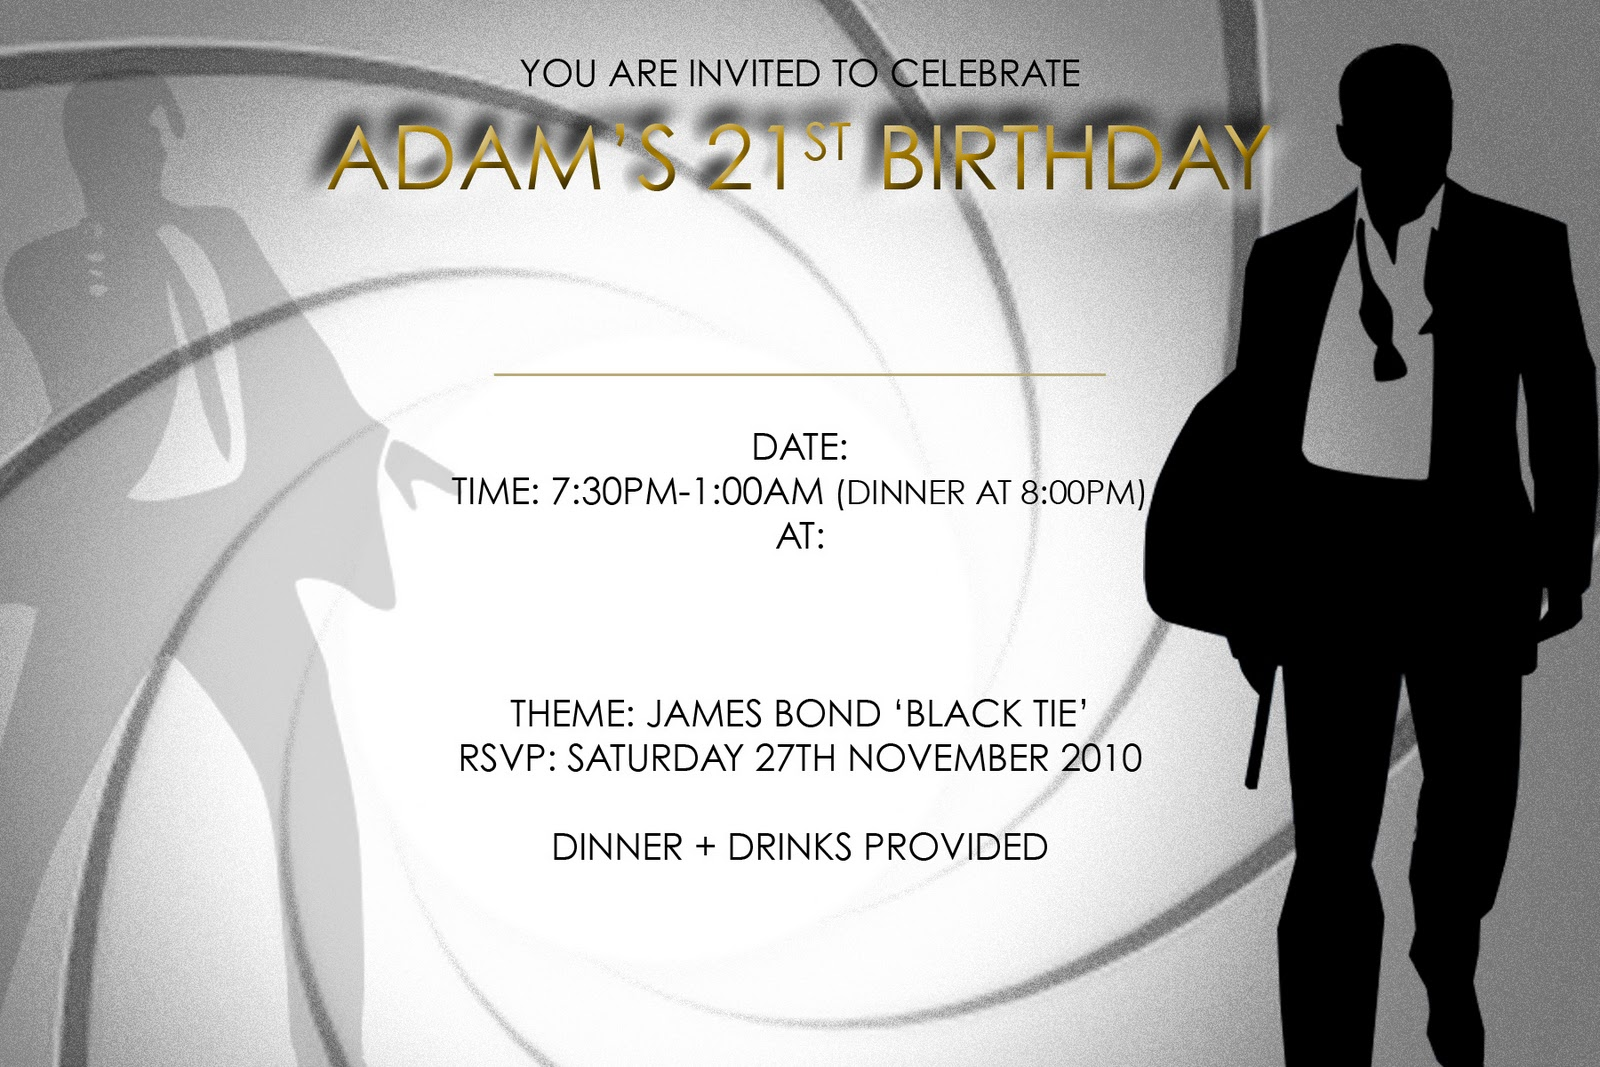 21st birthday invitations templates – 21 Birthday Invitation Templates